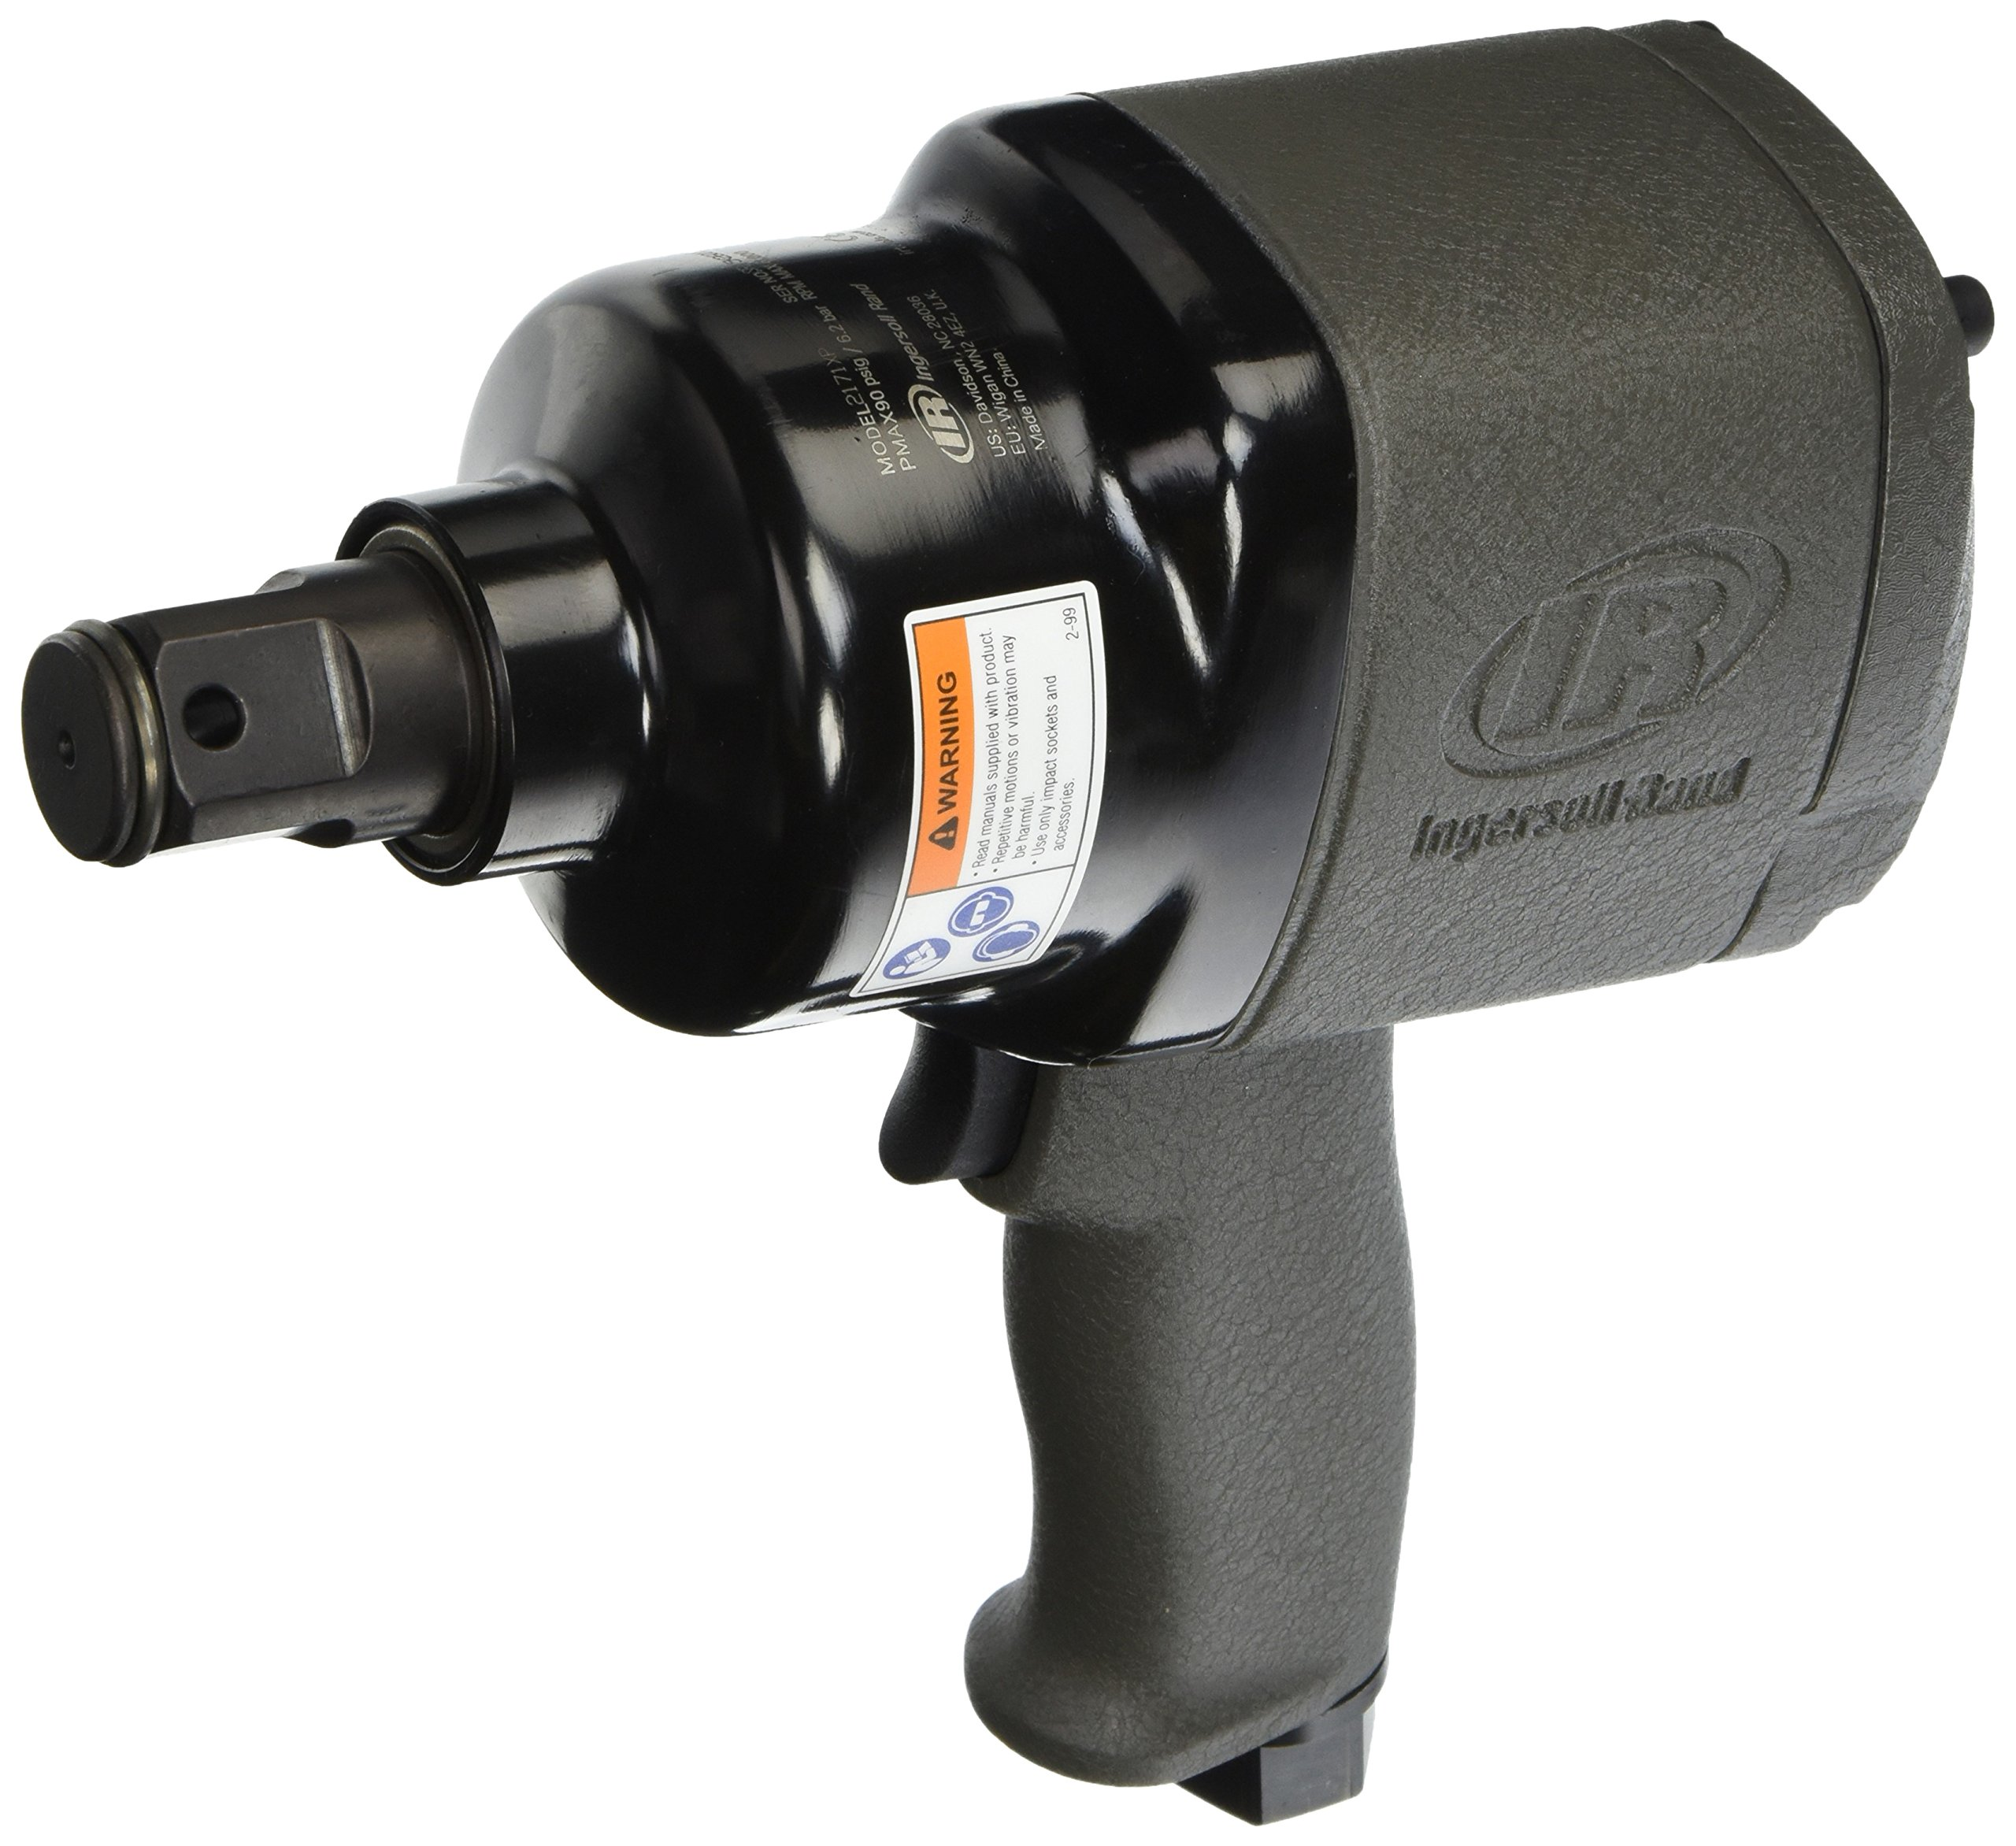 Ingersoll-Rand 2171XP Ultra Duty 1-Inch Pnuematic Impact Wrench